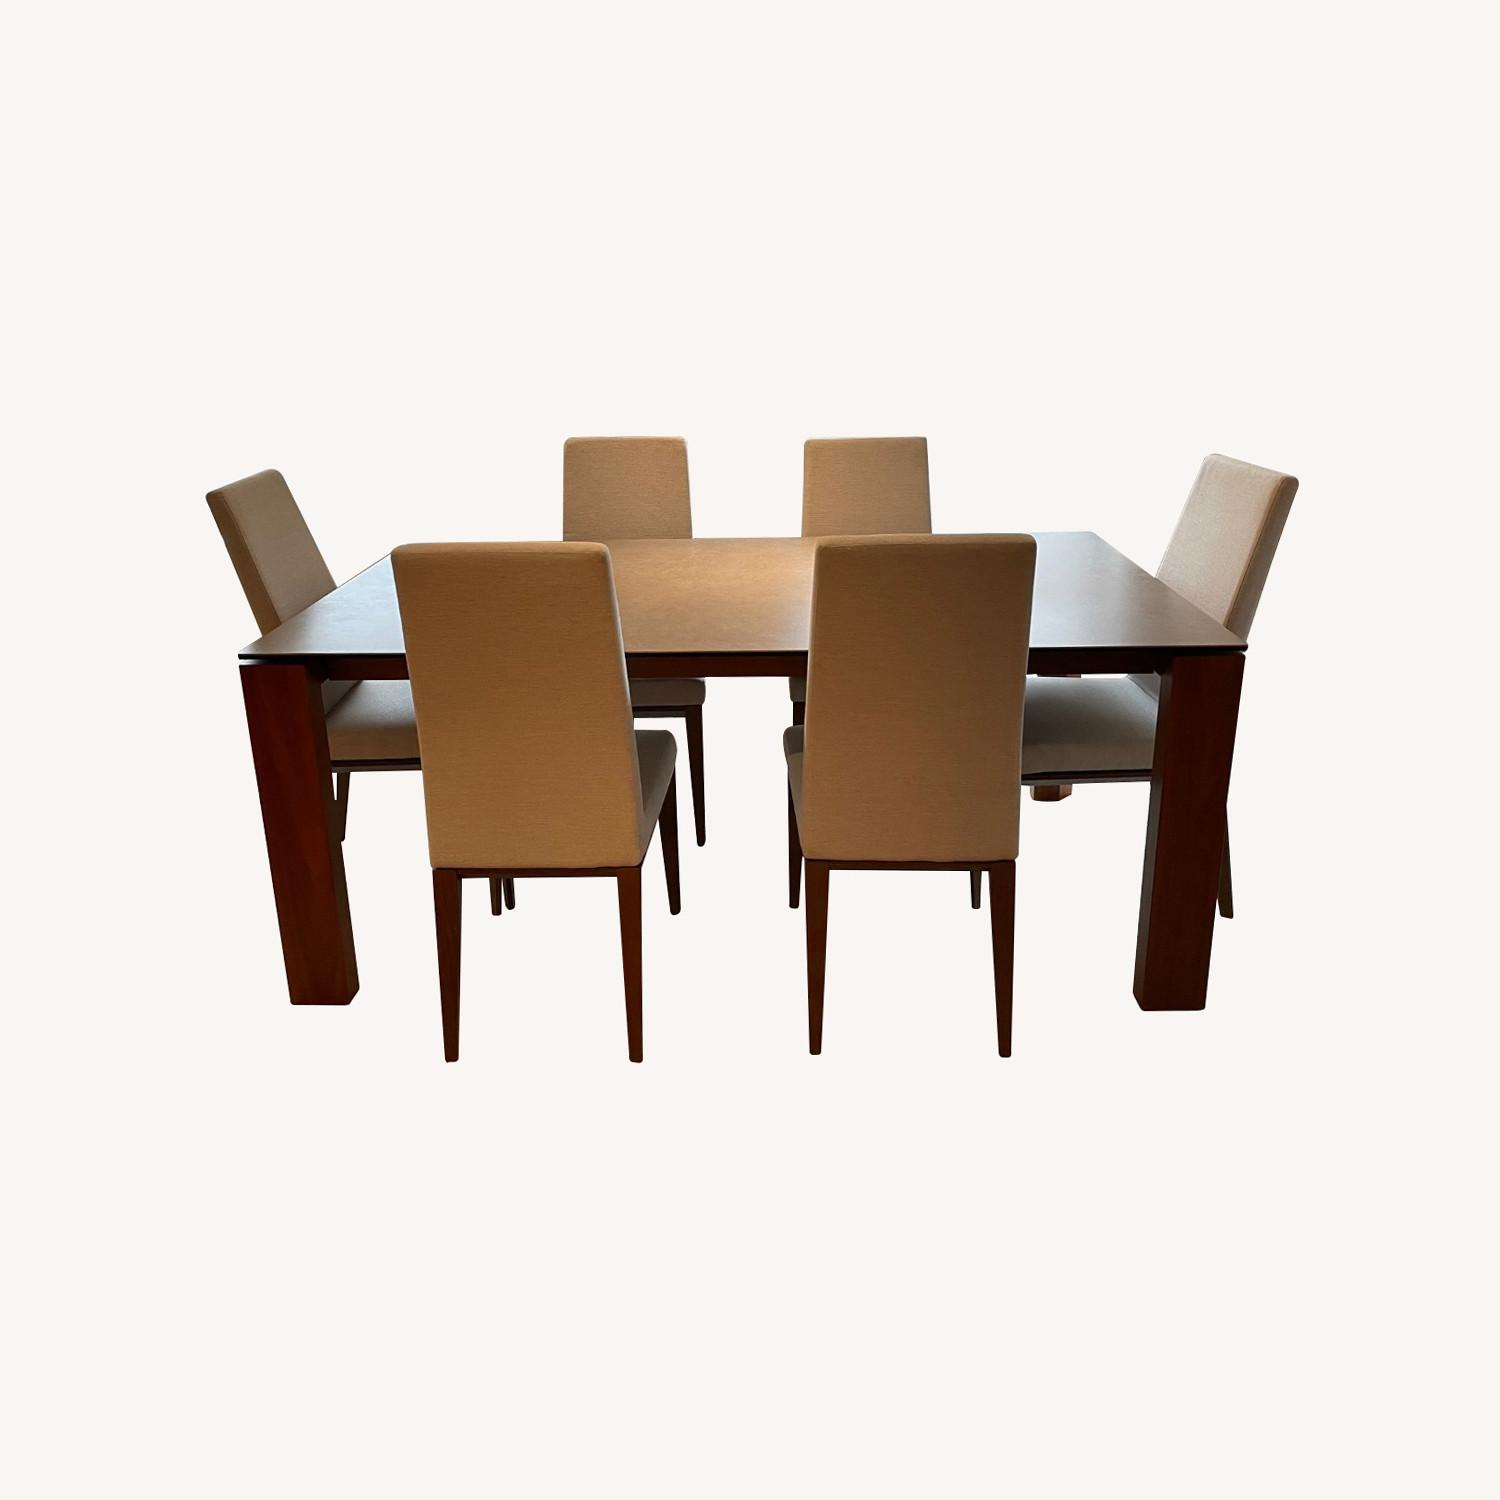 Calligaris Omnia Dining Room Table with Extension - image-0